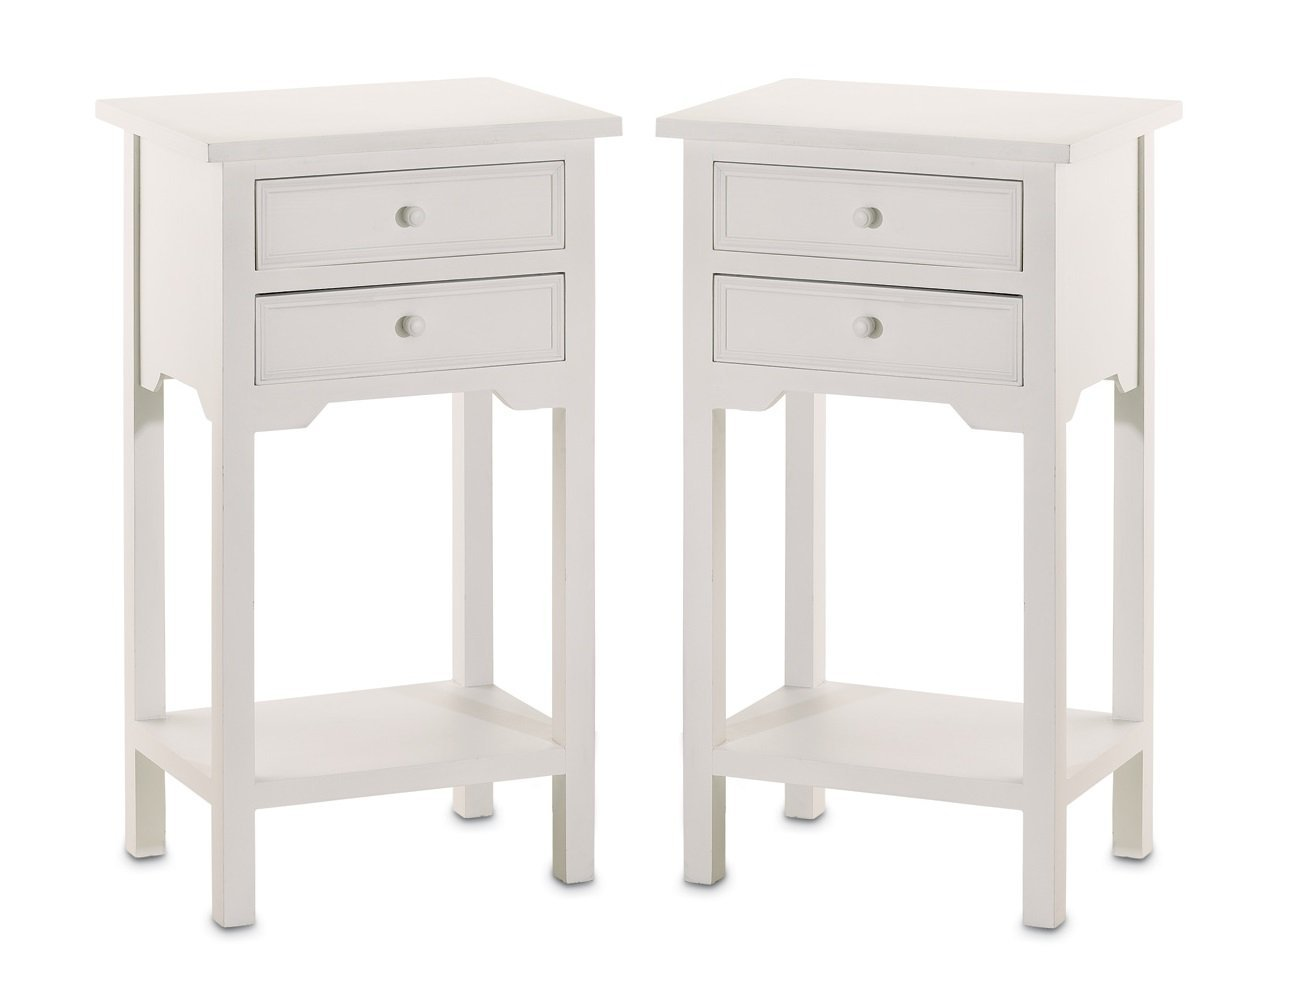 Elegant white bedside table with drawers amazon.com: set of 2 wood white end tables nightstands with two drawers: gbnrqgf